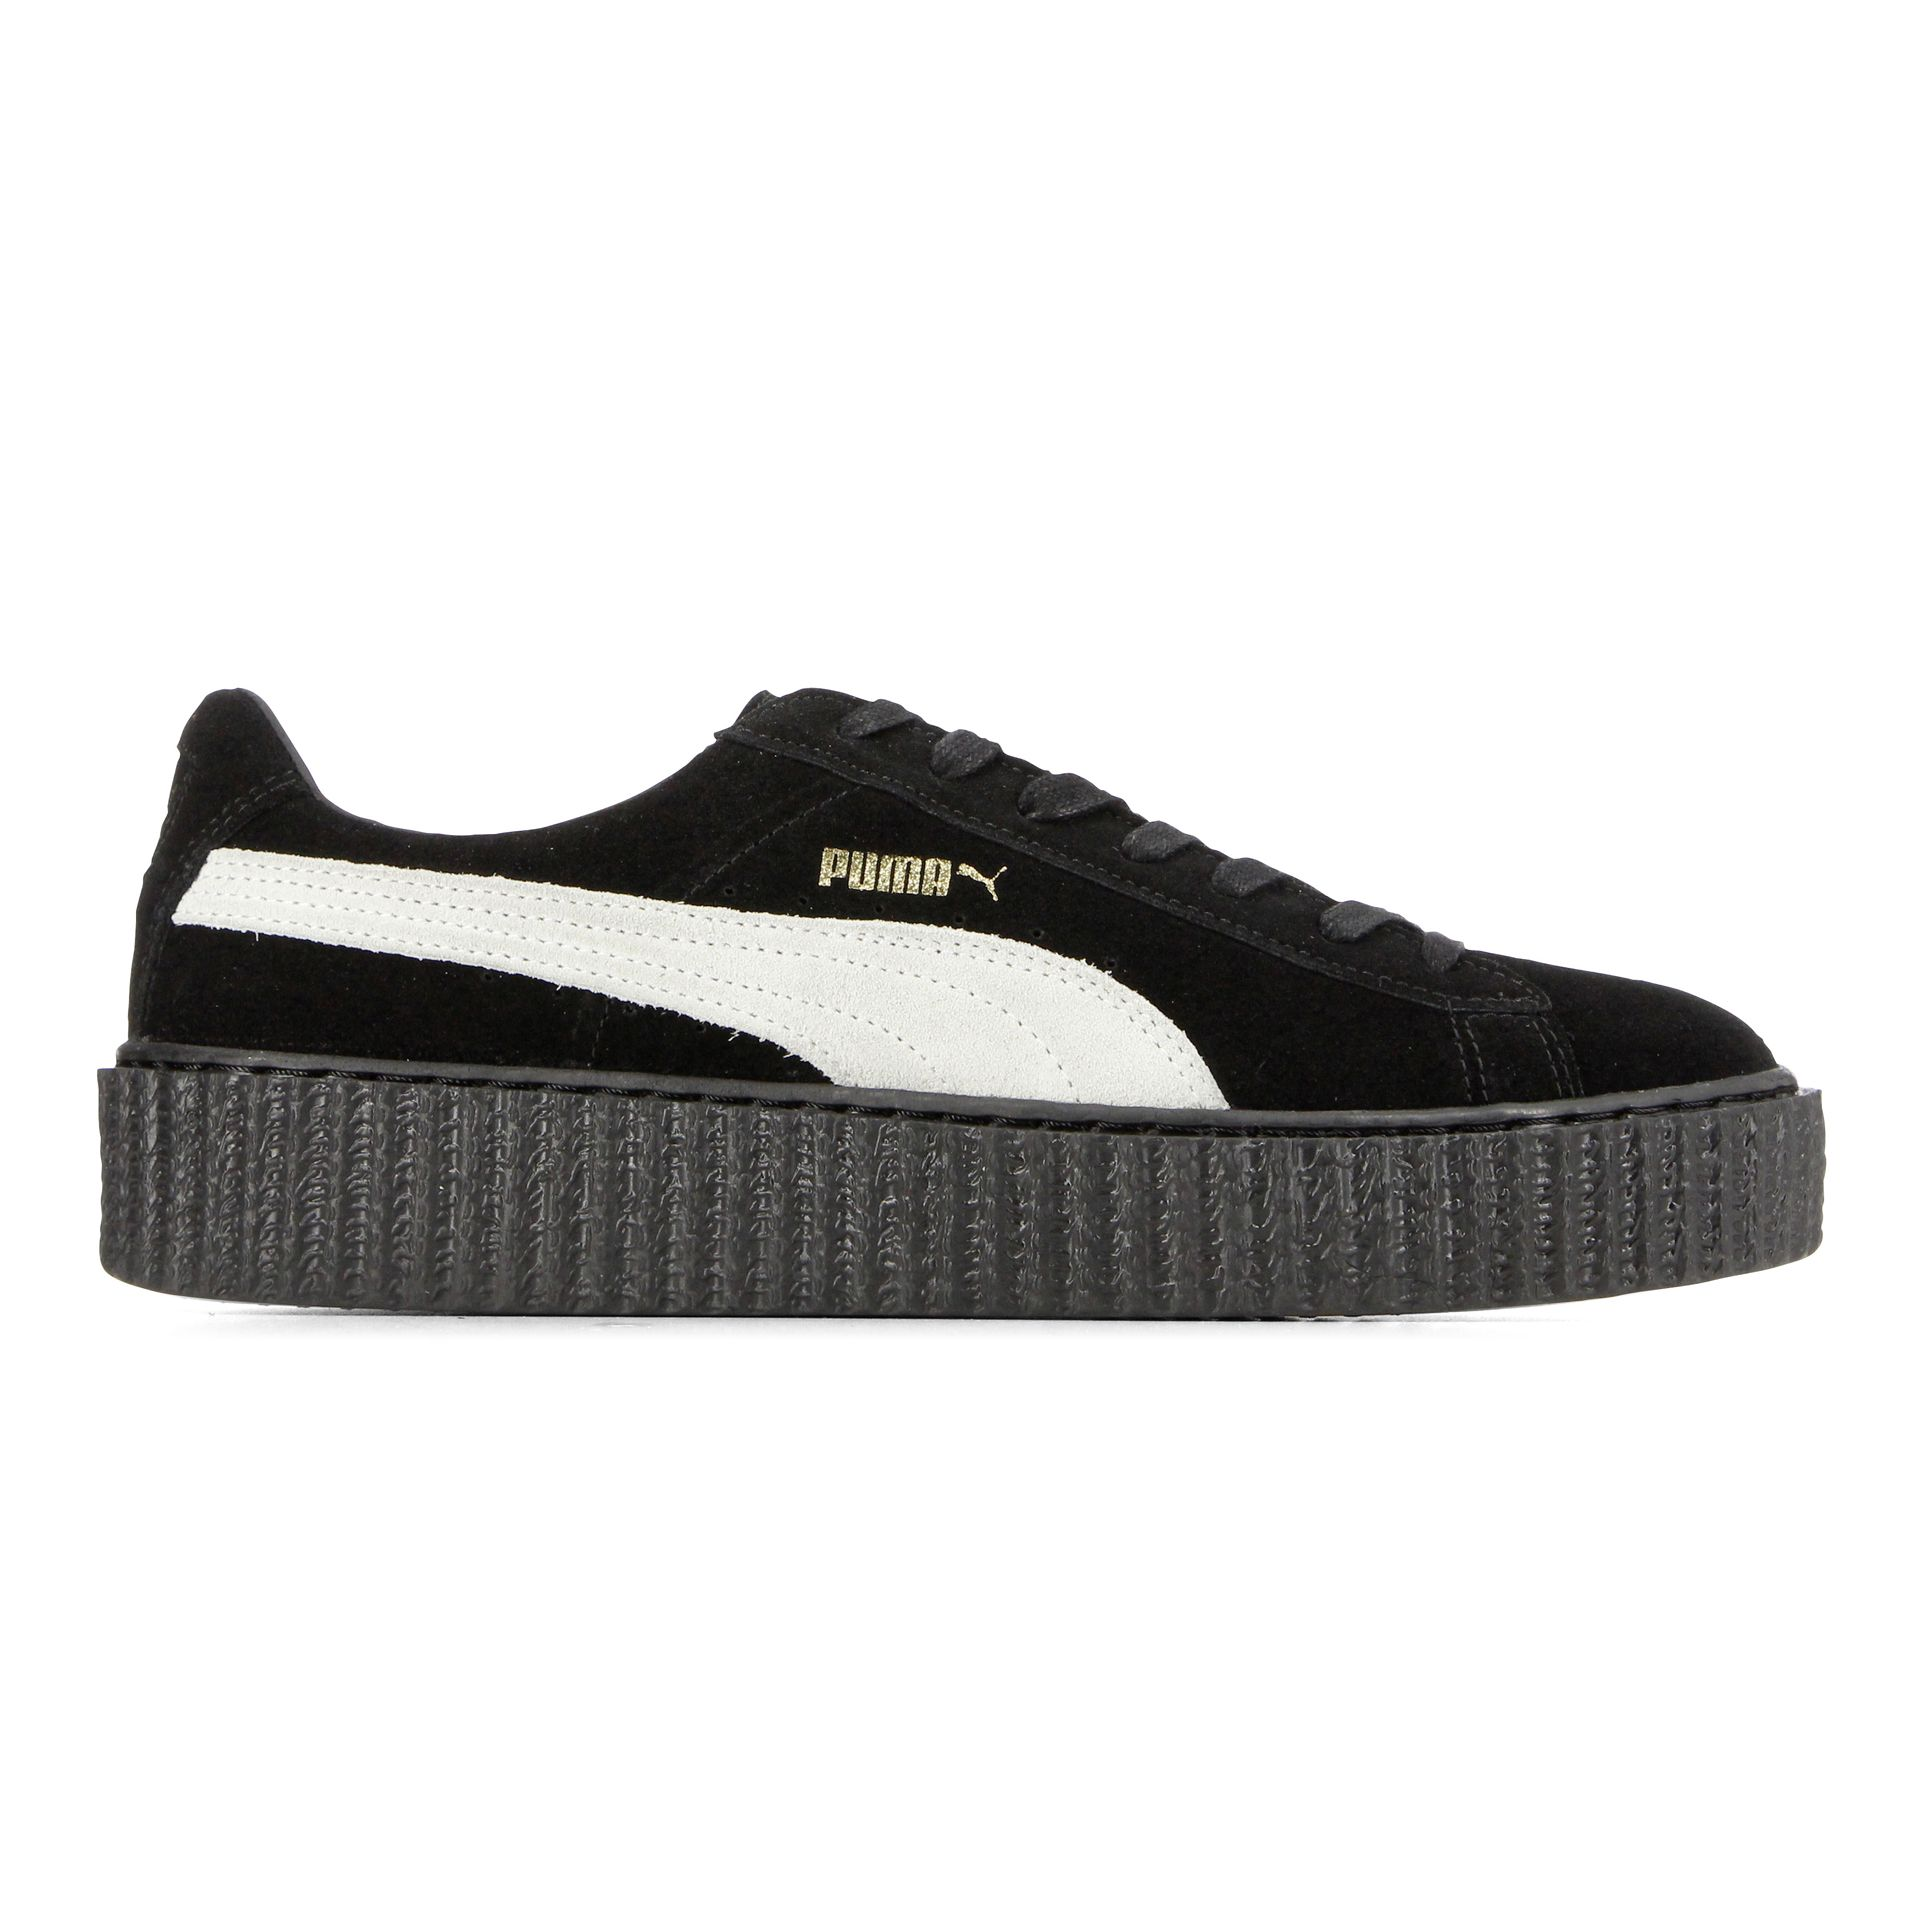 Puma CreepersSneakers Chaussure Suede Pinterest Et Mode SUMqzVpG